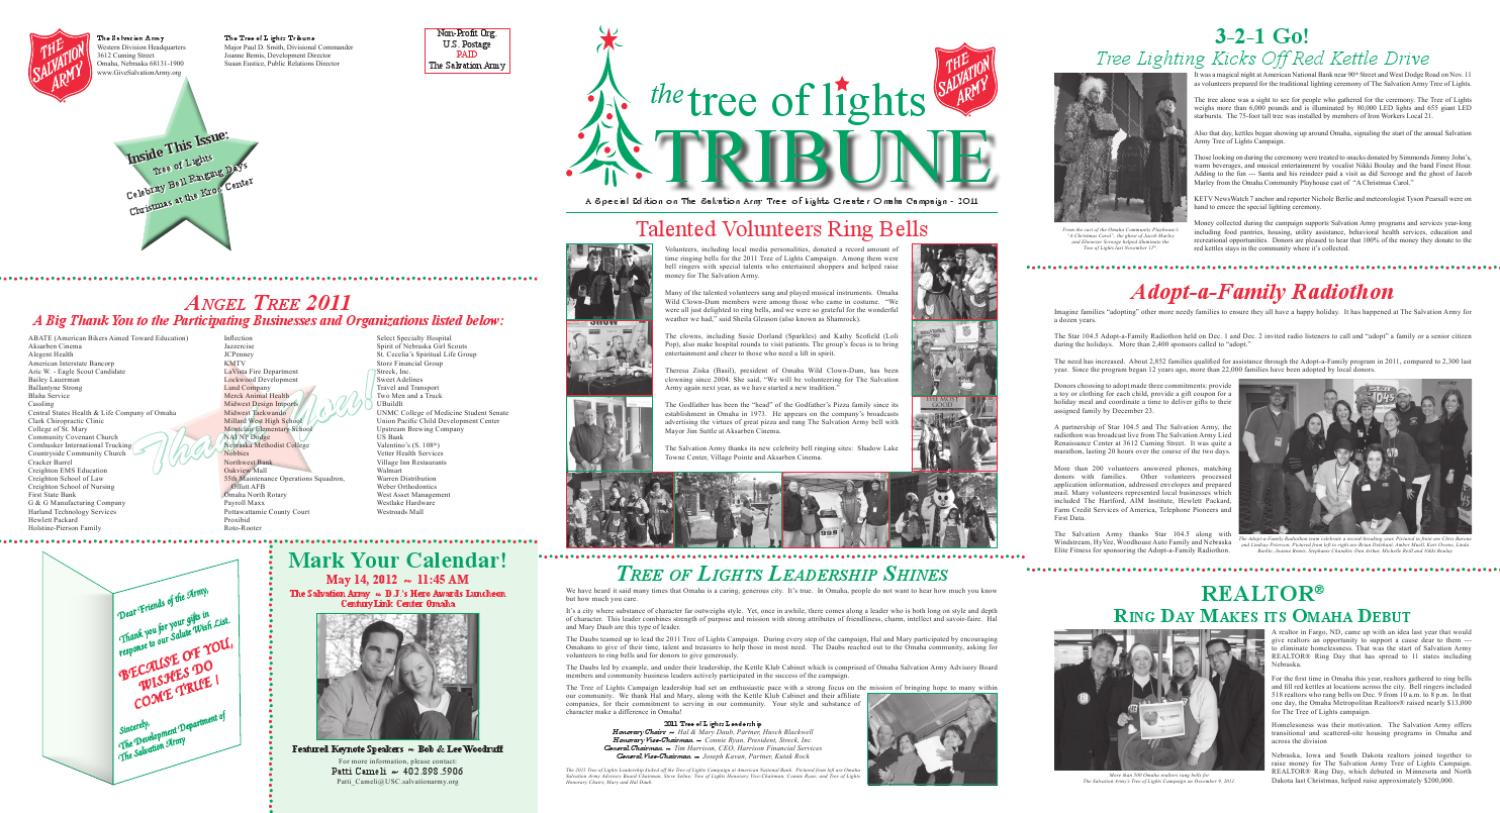 2011 Tol Tribune Newsletter By The Salvation Army Western